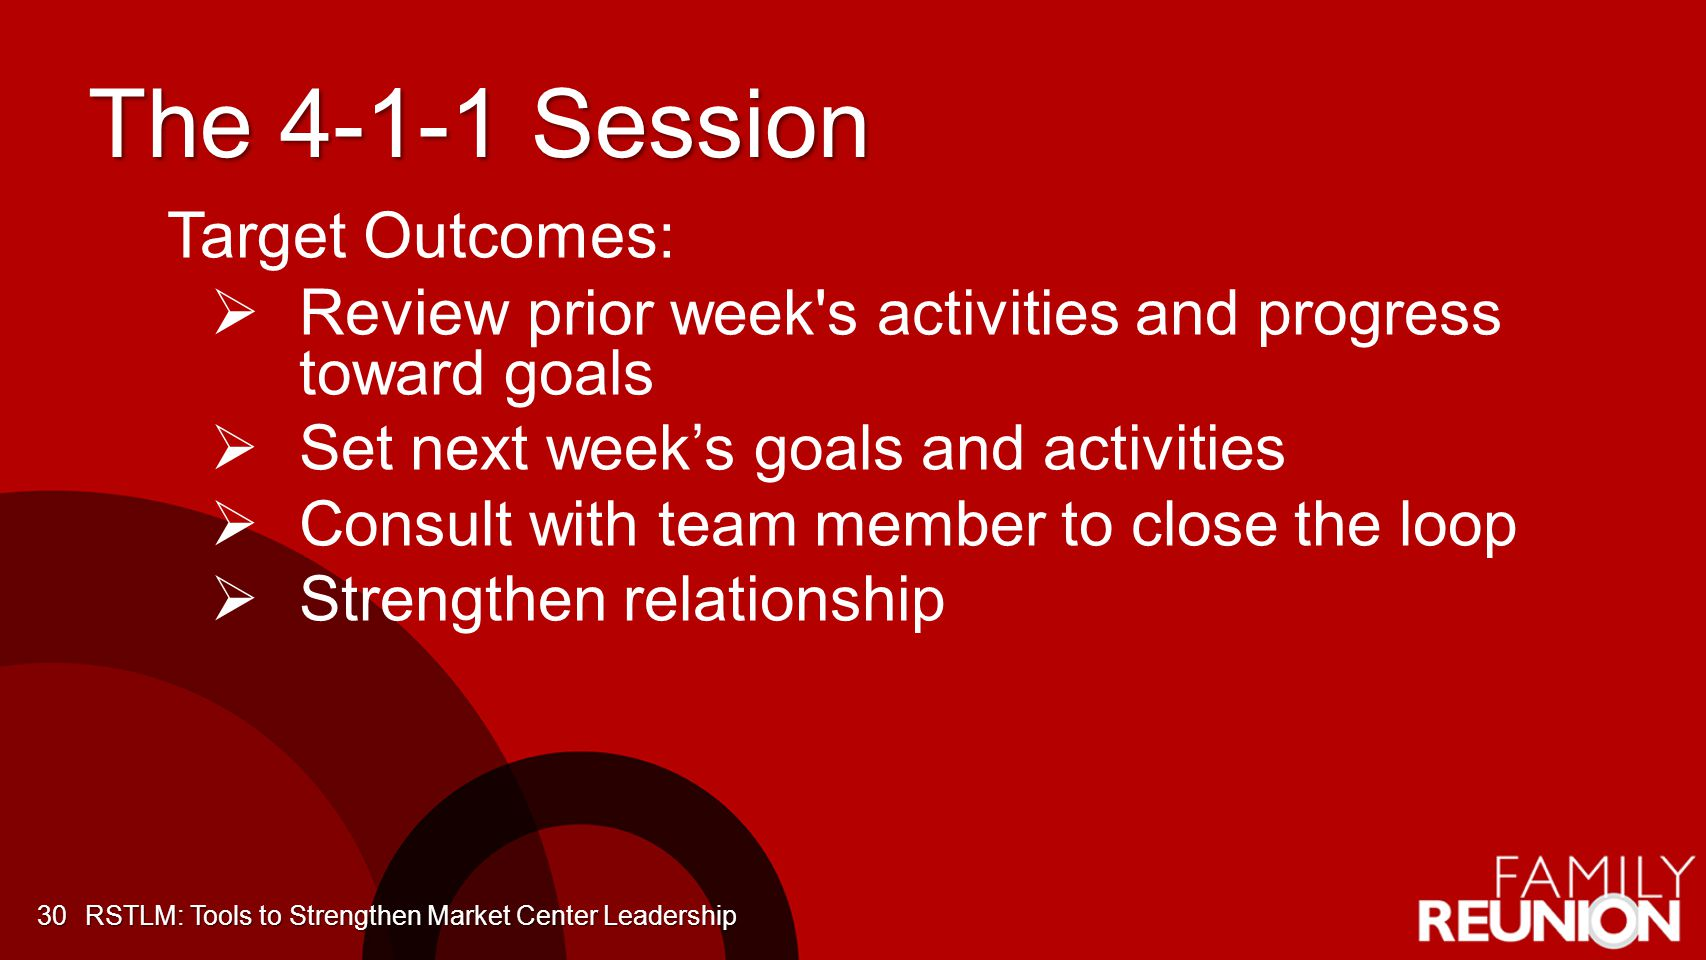 The 4-1-1 Session 30 Target Outcomes: Review p rior week's activities and progress toward goals Set next weeks goals and activities Consult with team